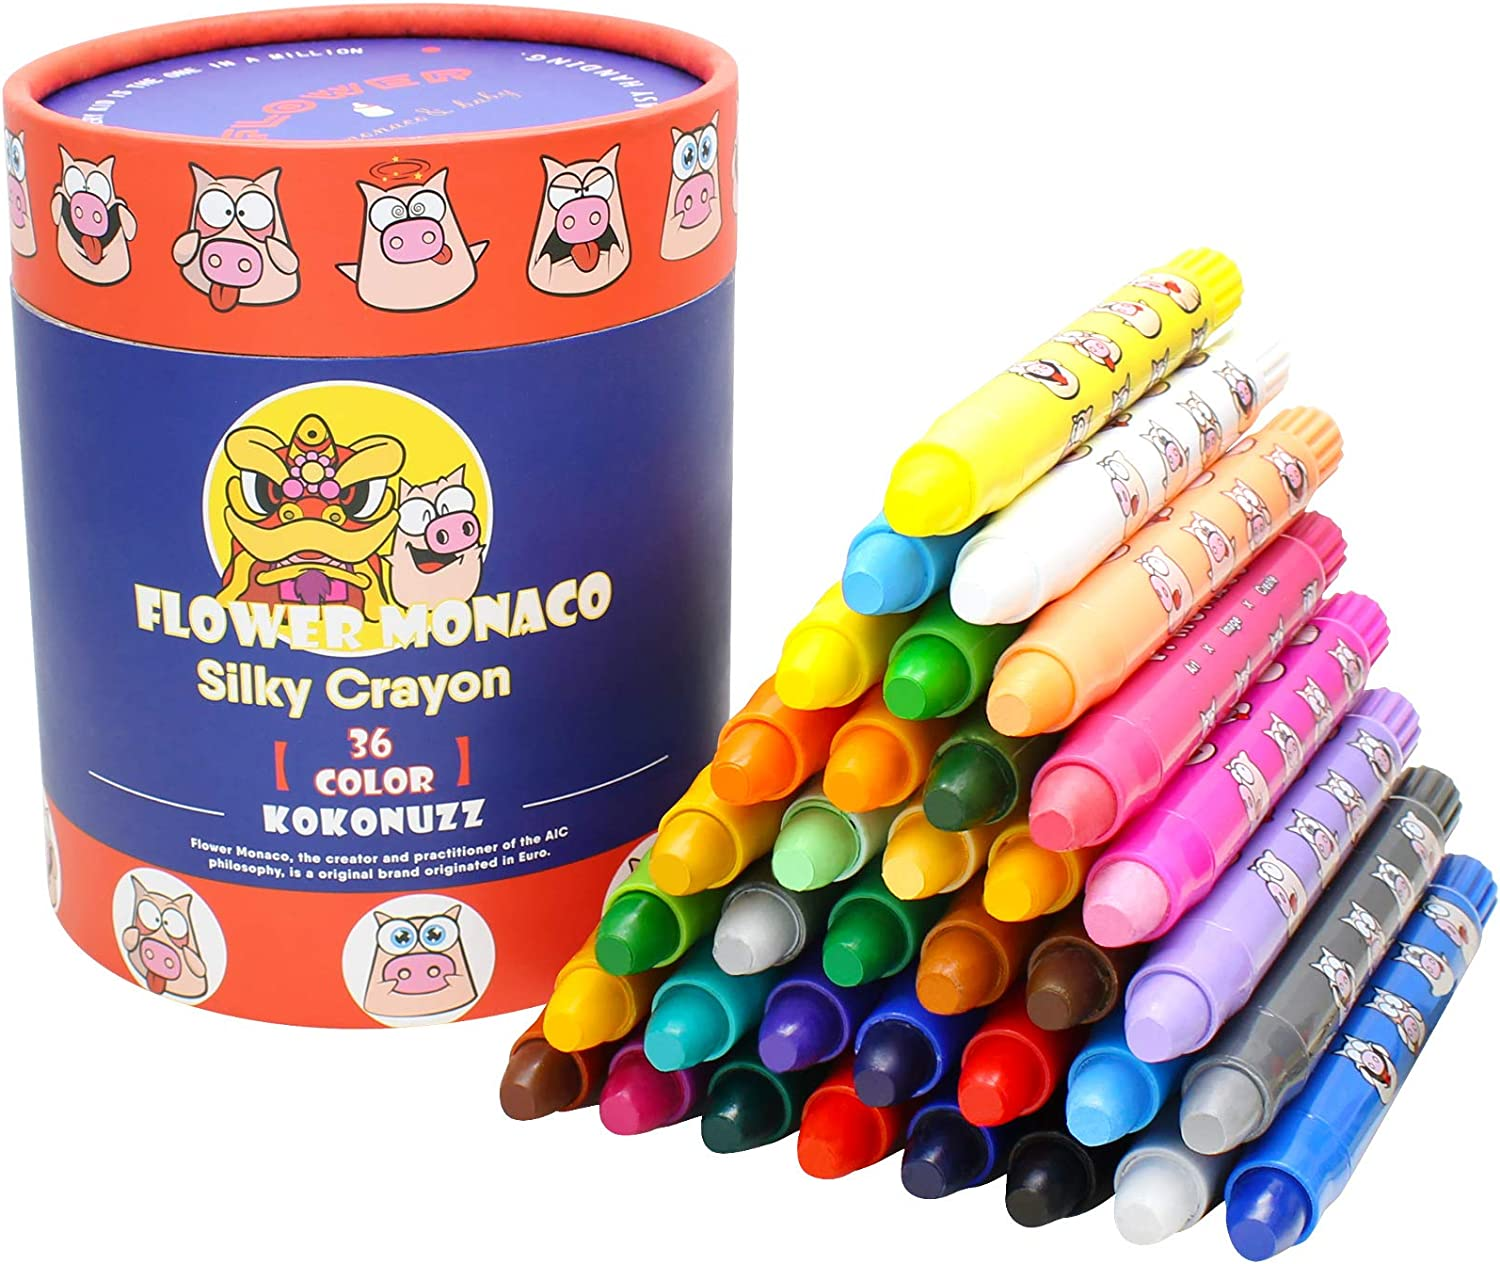 Non Toxic Silky Colourful Twistable Crayons Set Easy to Hold 12 Colors Large Crayons Safe for Babies and Children Flower Monaco DIY Drawing OUTFANDIA Toddler Crayons for Kids